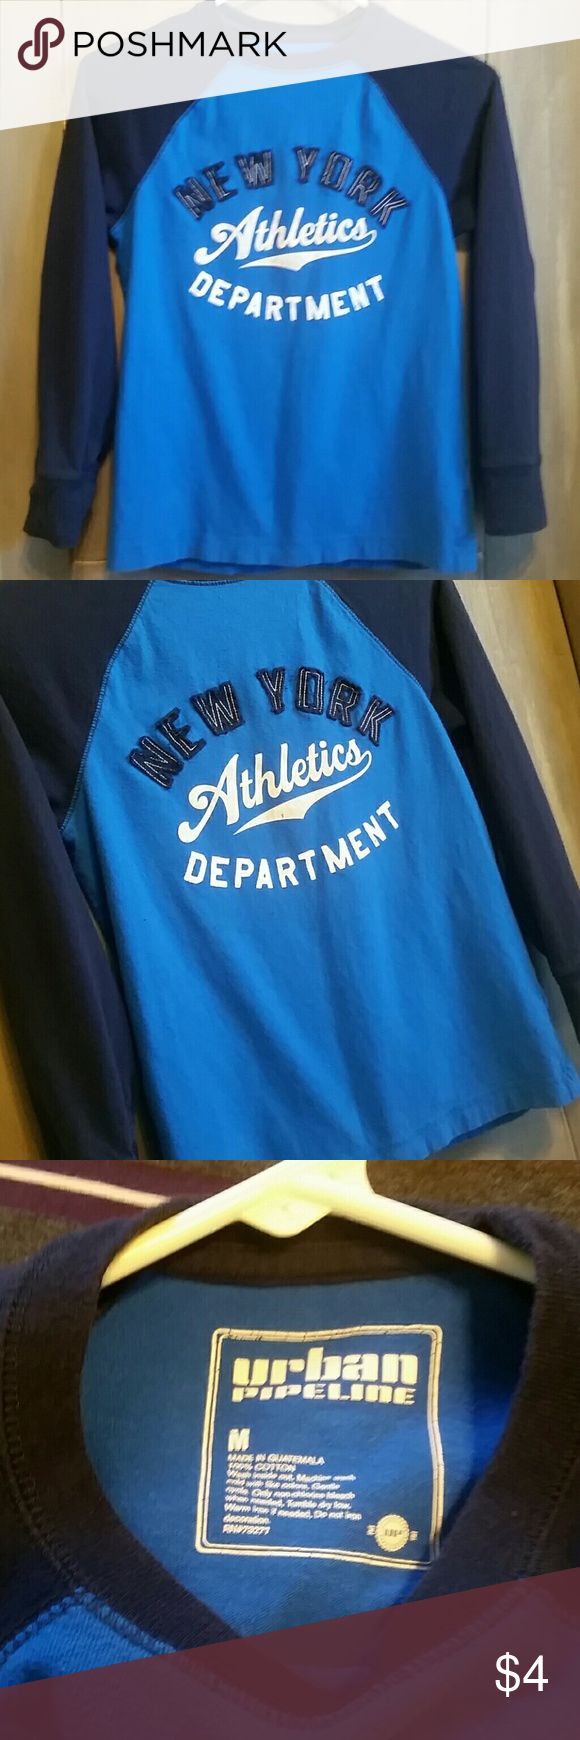 💜💙💚 Bigger Bundles Save More!!! 💚💙💜 Urban Pipeline New York Athletics shirt, size medium, has a couple spots as shown in photos 4,5,6 that's why it's only $4 or free with purchase!  💜💙💚 Bigger Bundles Save More!!! 💚💙💜  💜 10% off 2 or more... 💙 15% off 3 or more...  💚 20% of 4 or more... 💜 25% off 5 or more!! Urban Pipeline Shirts & Tops